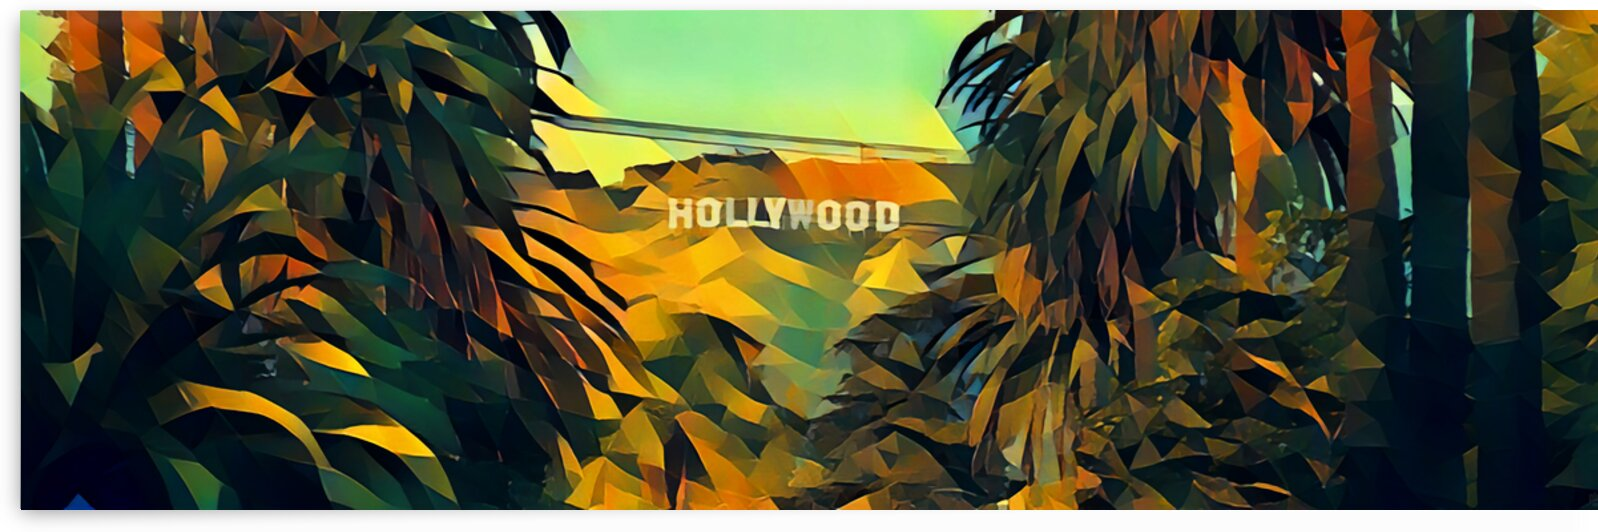 hollywood sign art by Pierce Anderson